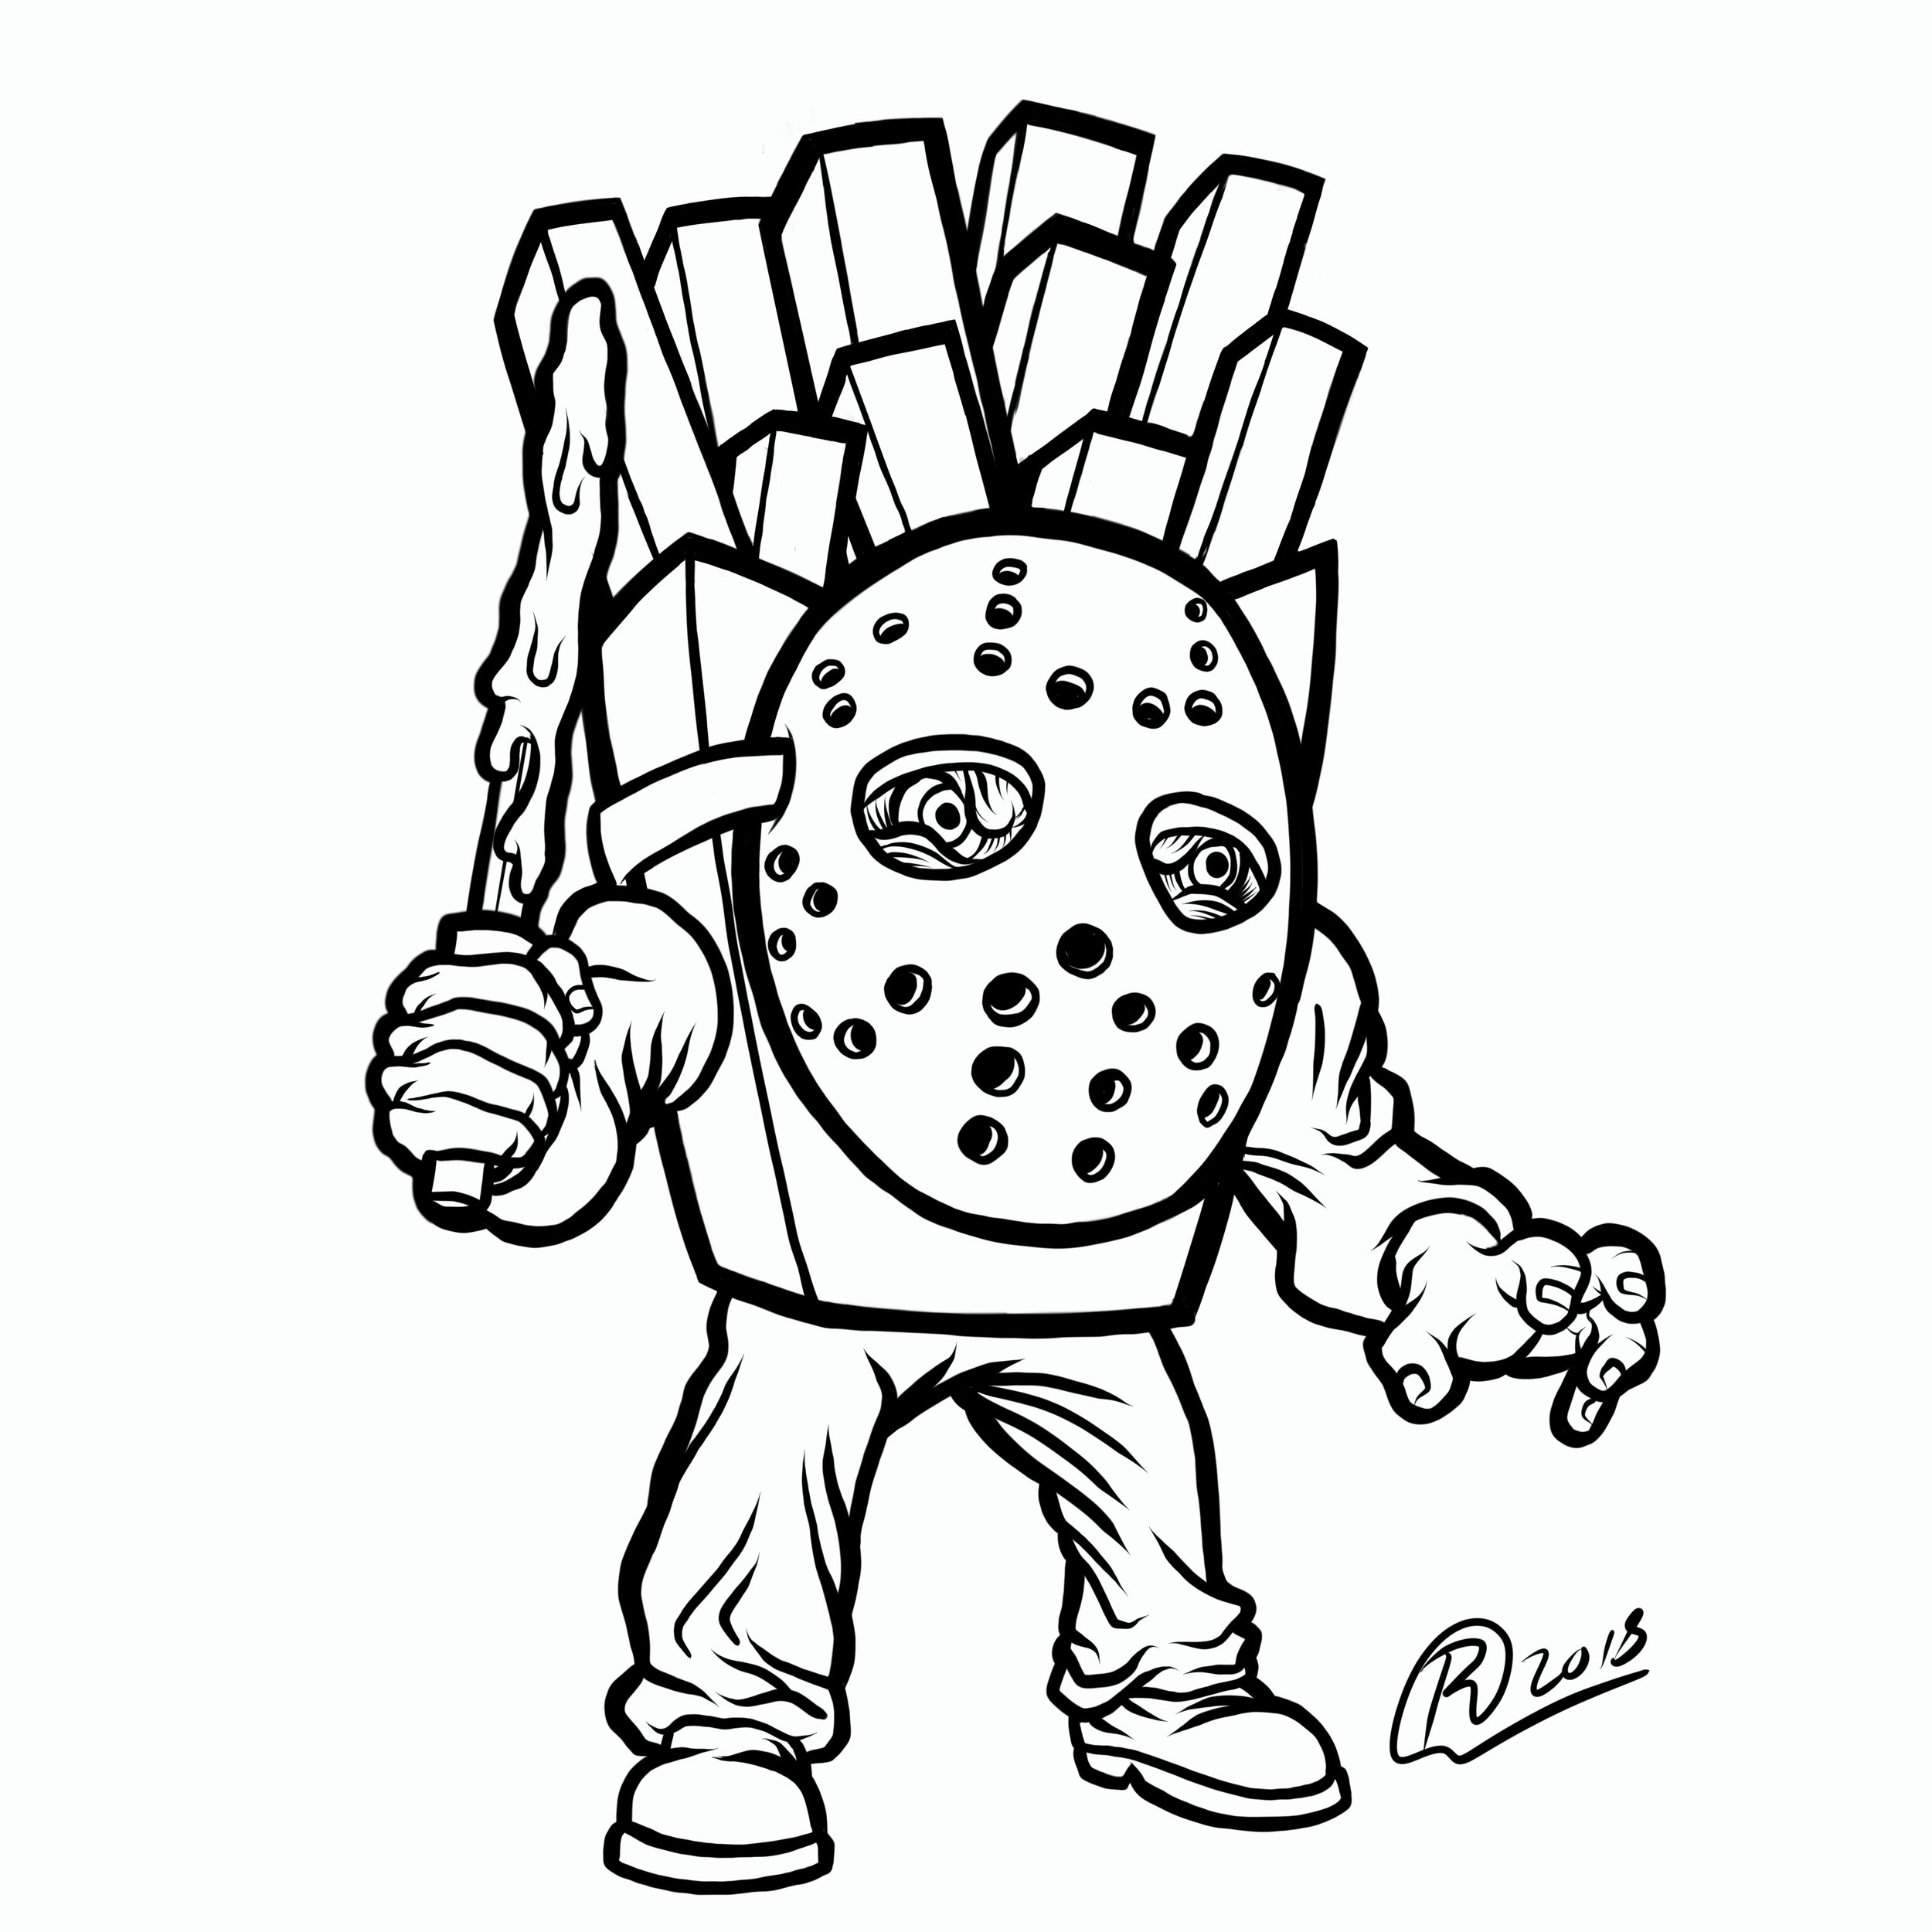 fryday-the13th-jason-movie-cartoon-character-illustration-toy-orozco-design.JPG